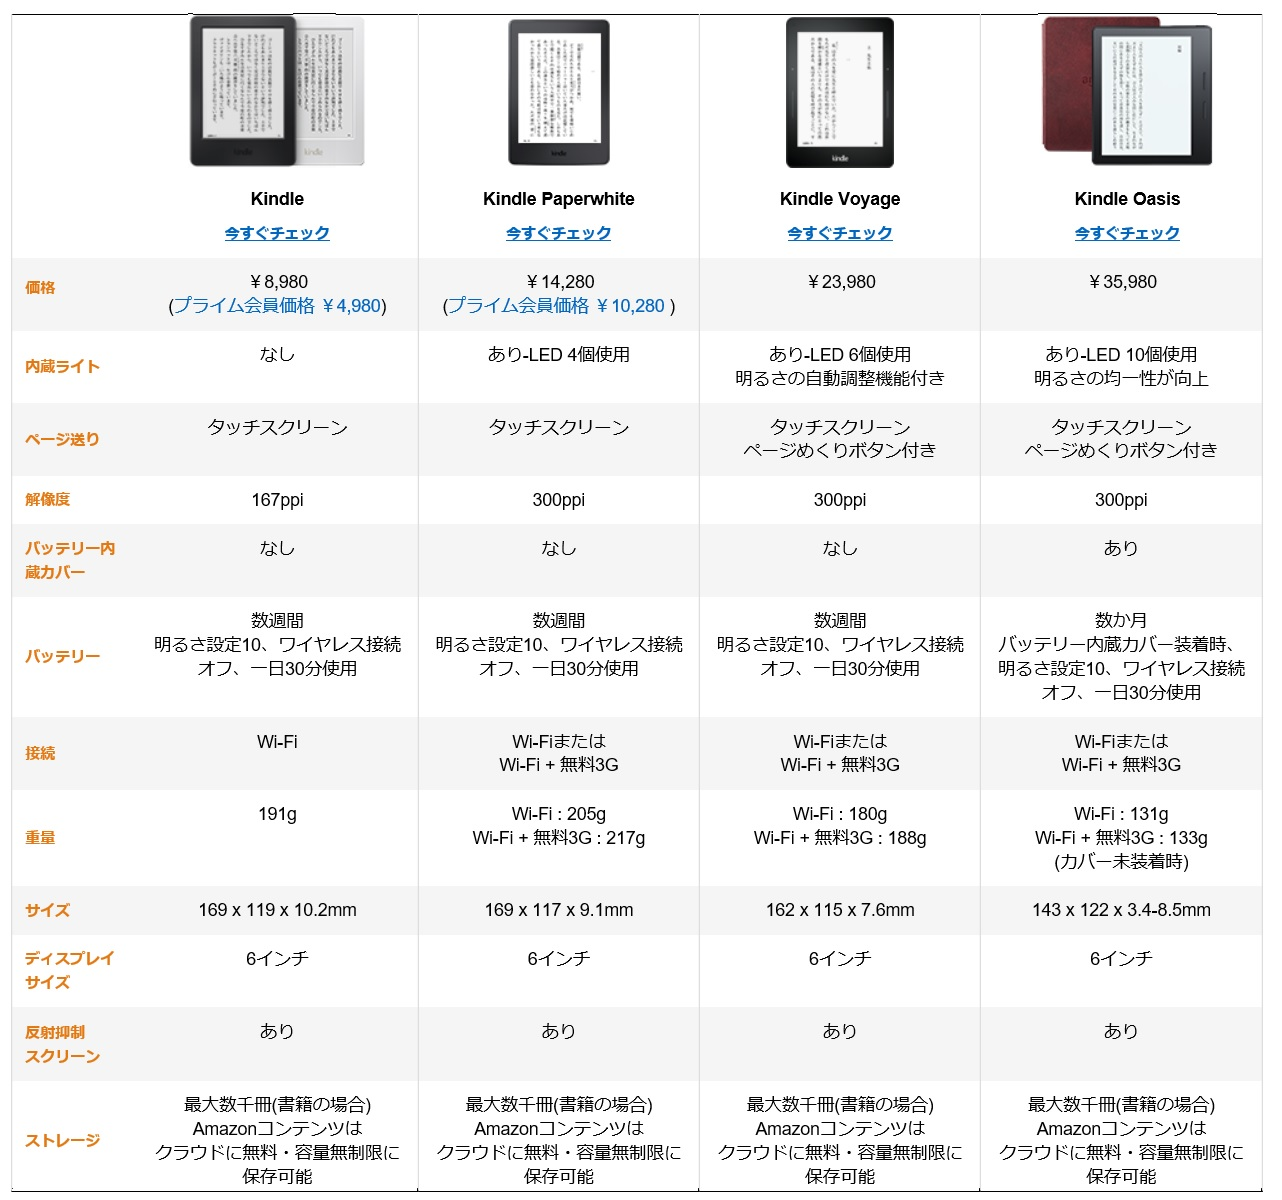 Amazon Kindle specifications